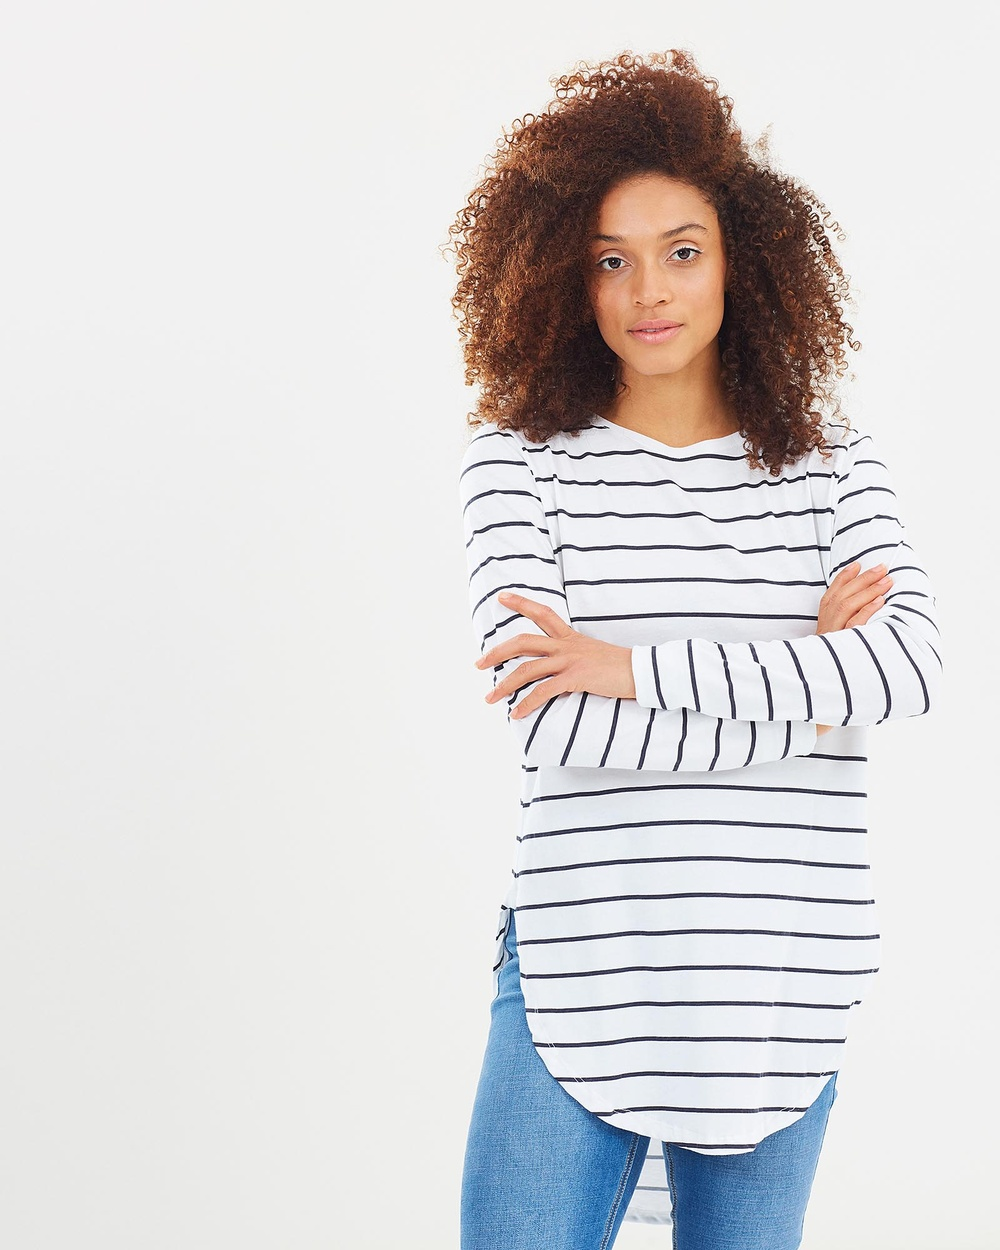 Casa Amuk Teardrop Long Sleeve Tee Tops Classic Stripe Teardrop Long-Sleeve Tee